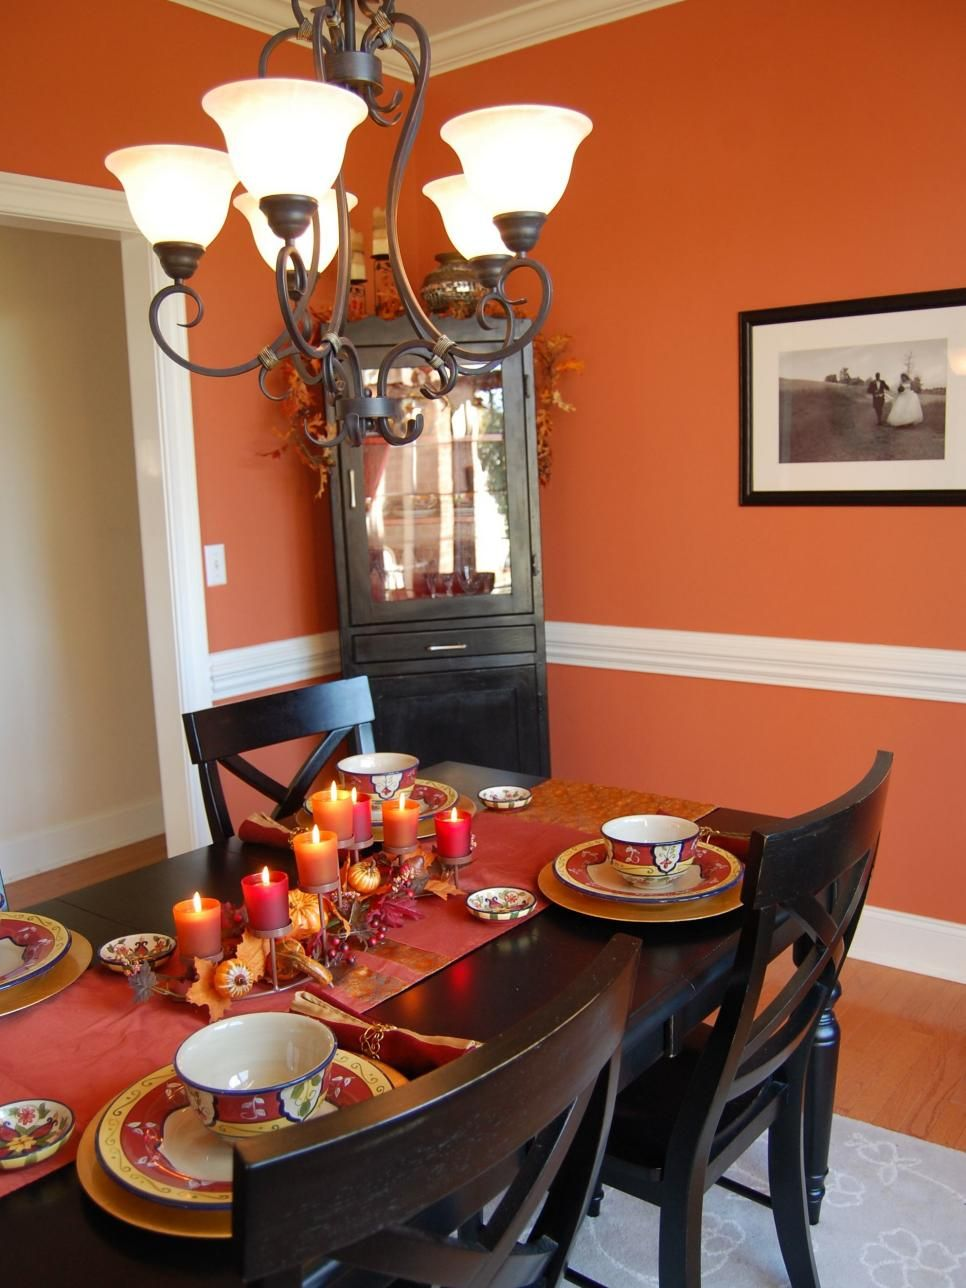 Our Favorite Thanksgiving Table Setting Ideas Thanksgiving Dining Table Decor Thanksgiving Dining Room Decor Thanksgiving Dining Room